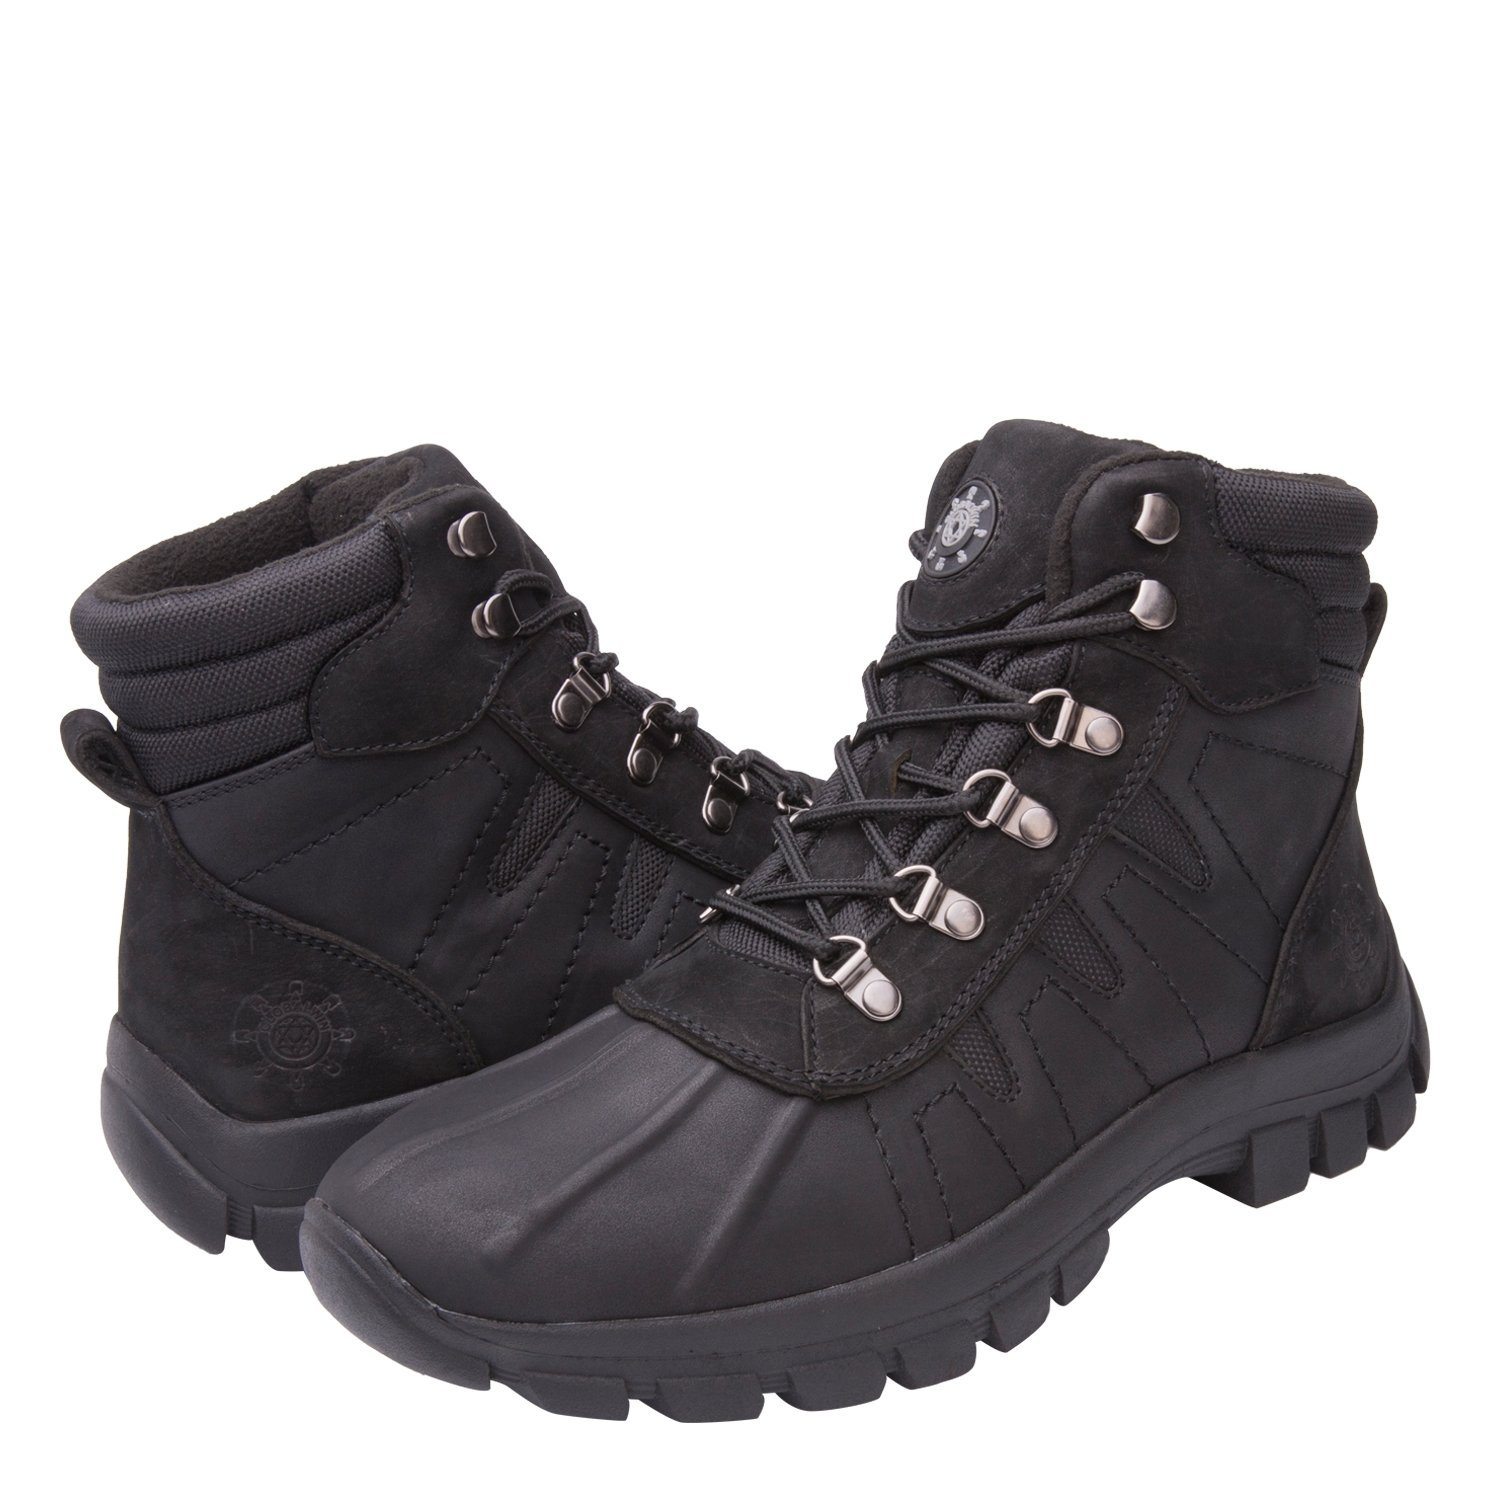 NORTIV 8 Men 170411 Insulated Waterproof Construction Hiking Winter Snow Boots